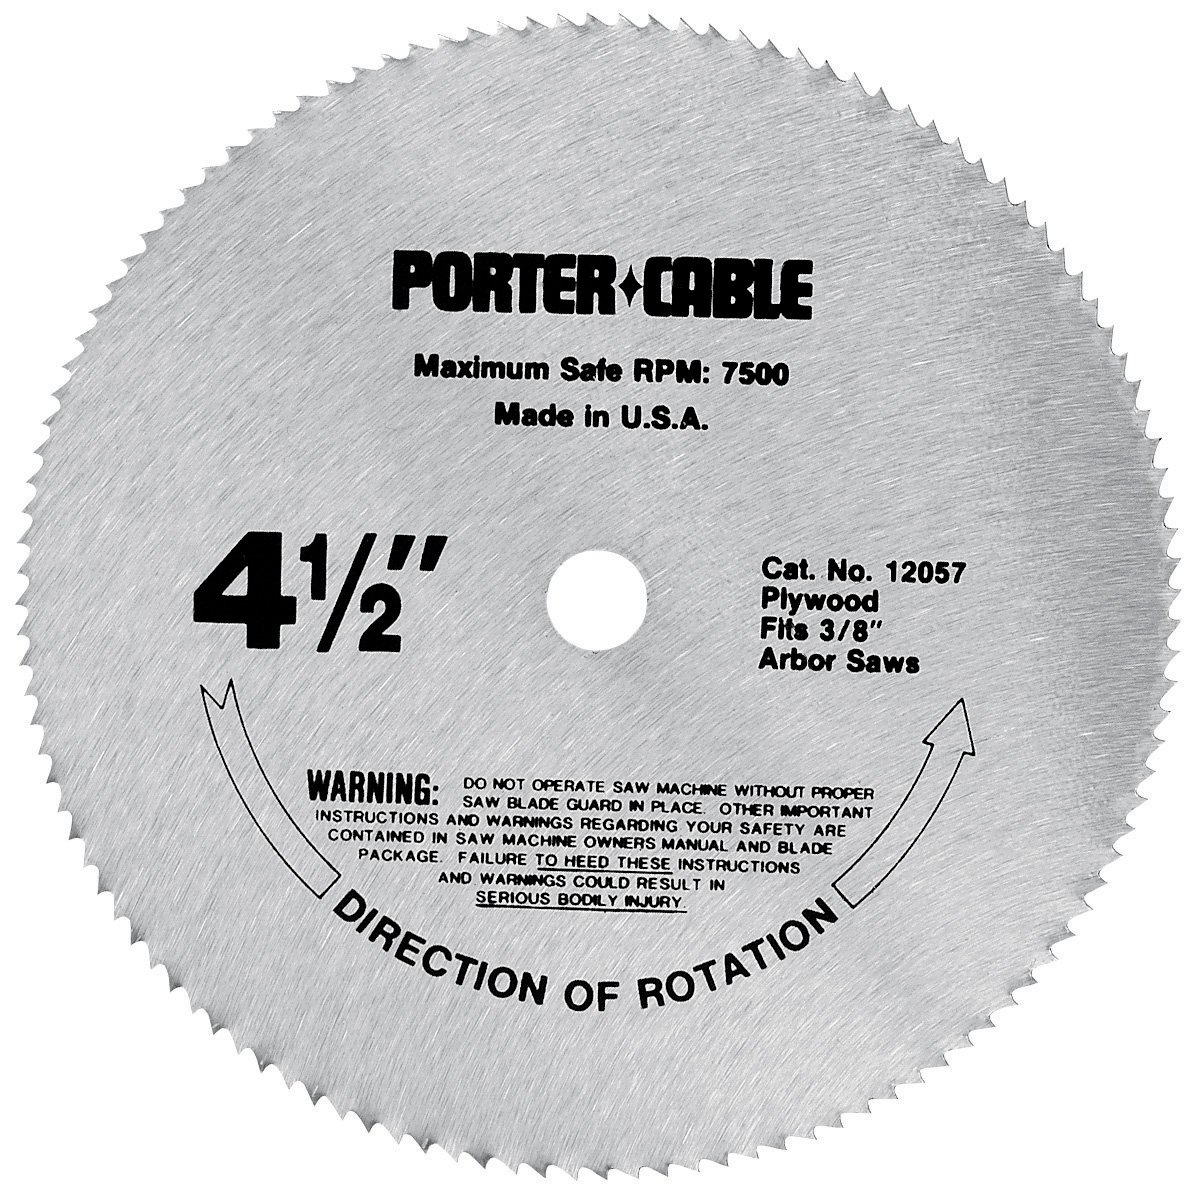 Porter cable 12057 4 12 inch 120 tooth tcg plywood cutting saw porter cable 12057 4 12 inch 120 tooth tcg plywood cutting saw blade with 38 inch arbor porter cable saw blades amazon greentooth